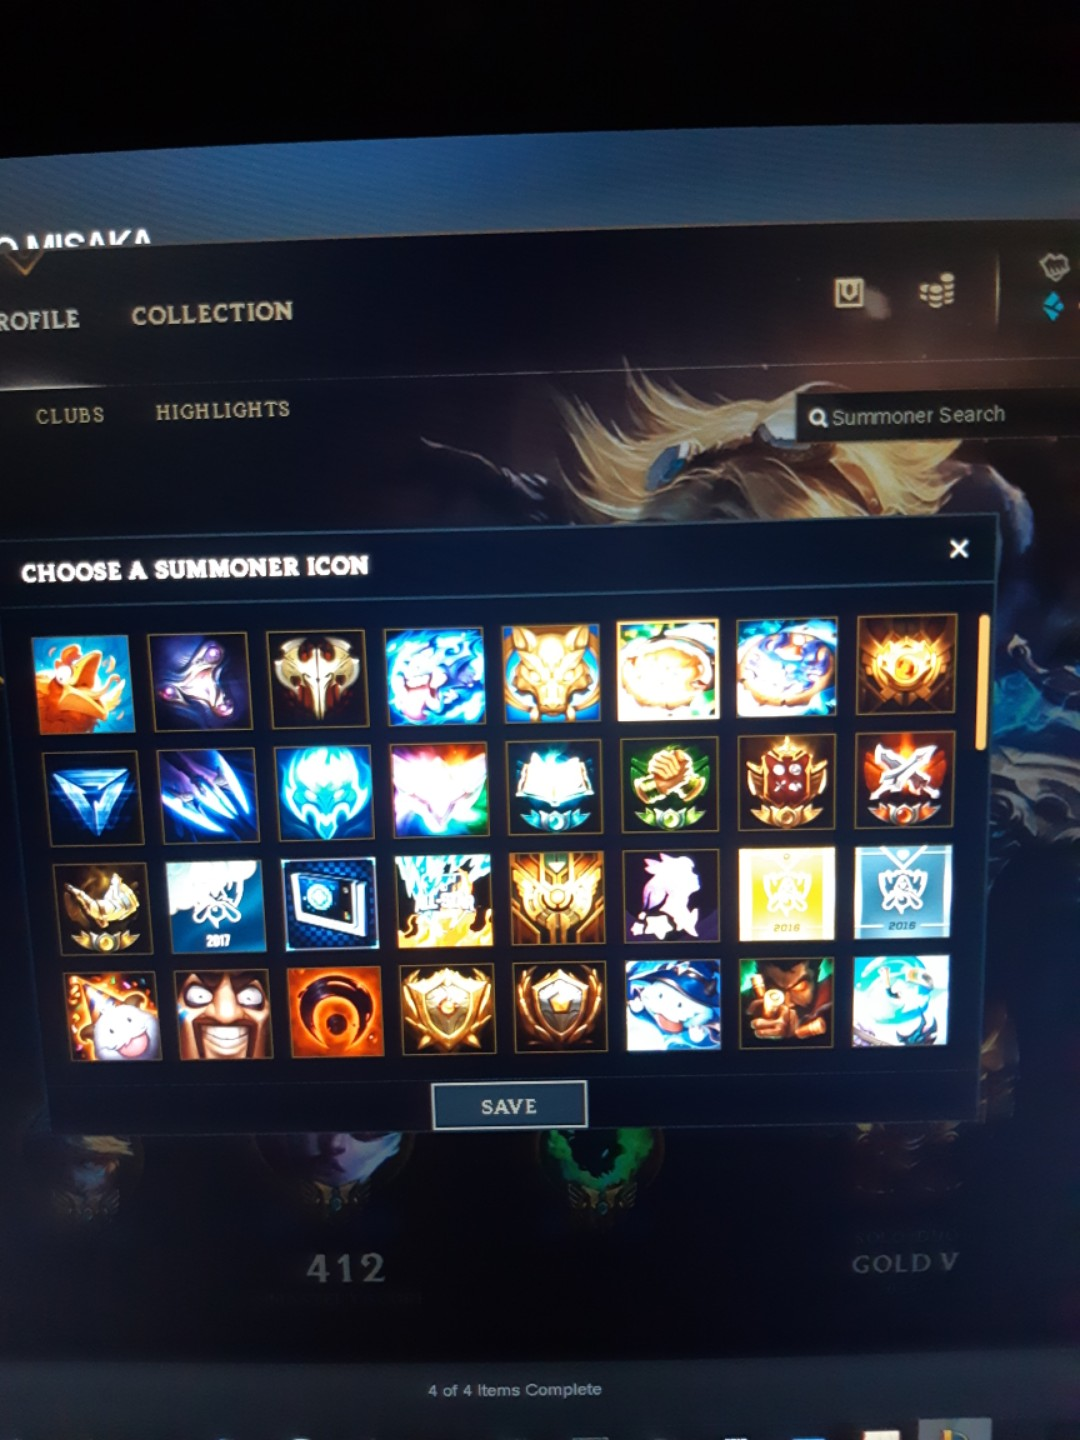 LEAGUE OF LEGENDS ACCOUNT negotiable, Toys & Games, Video